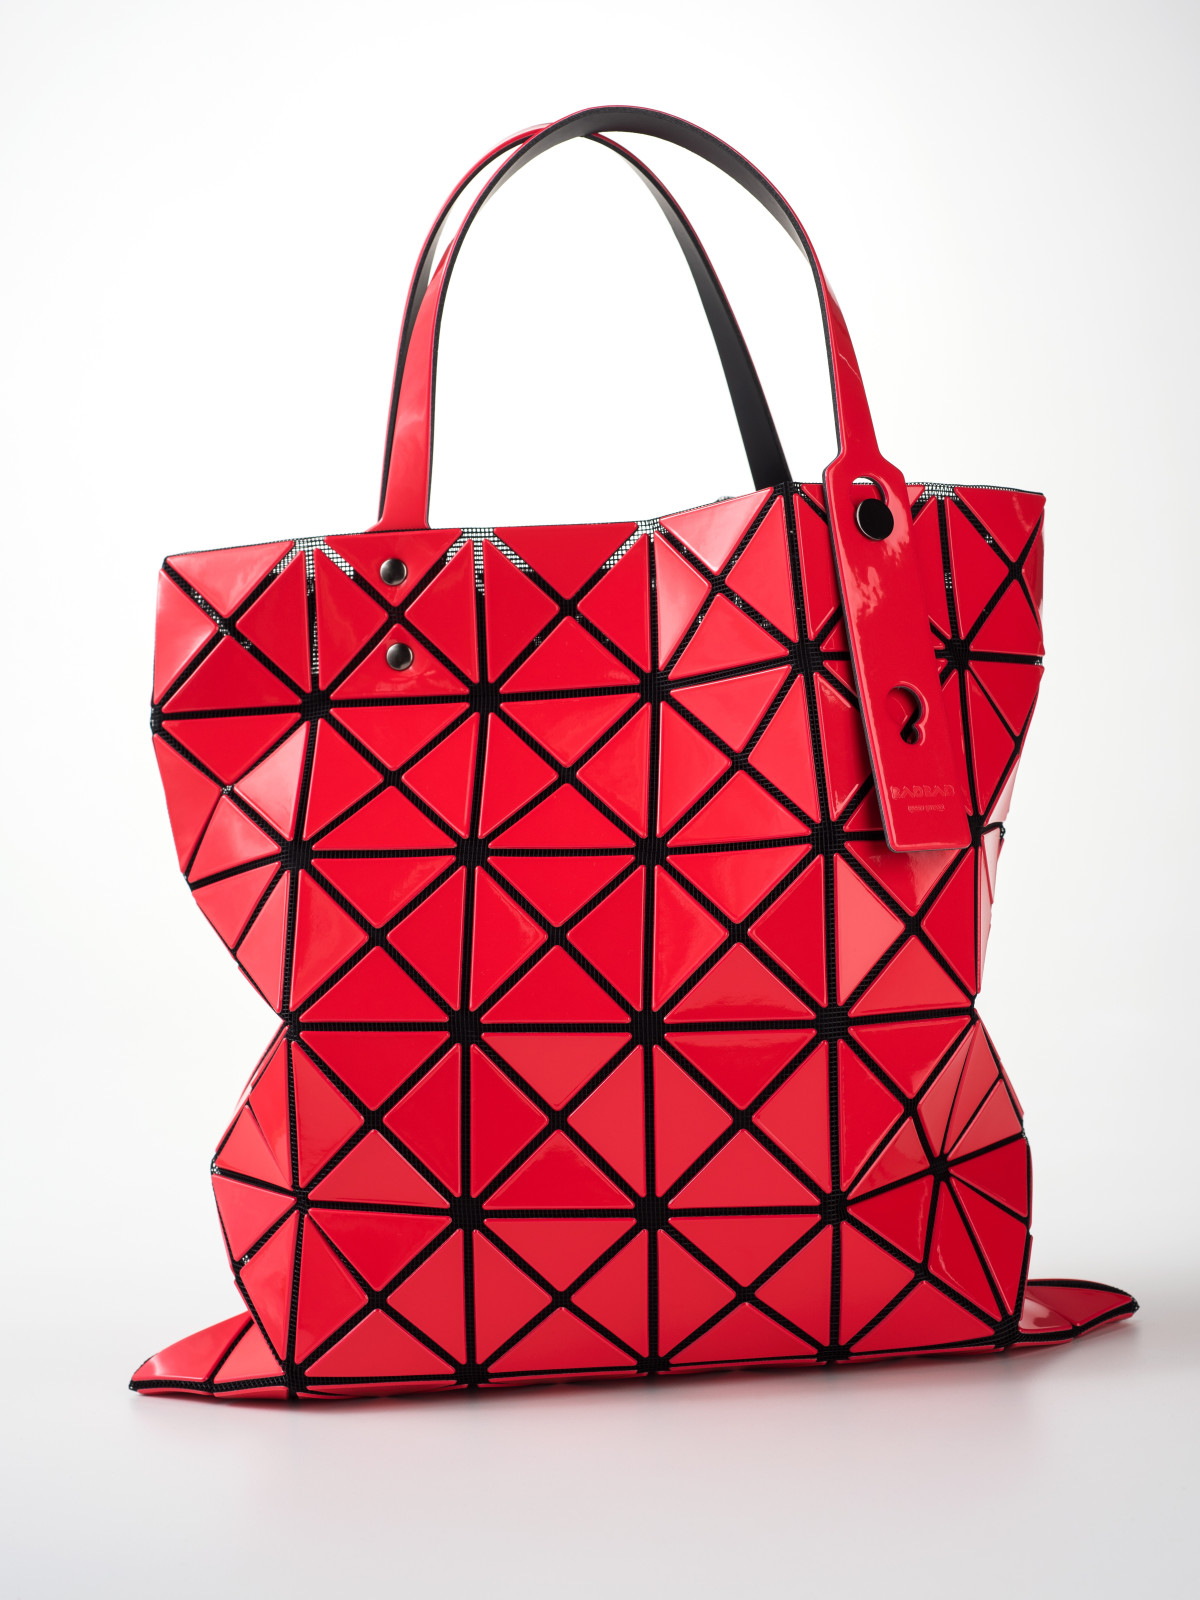 Bao Bao Issey Miyake lucent tote bag at the Lotus Shop